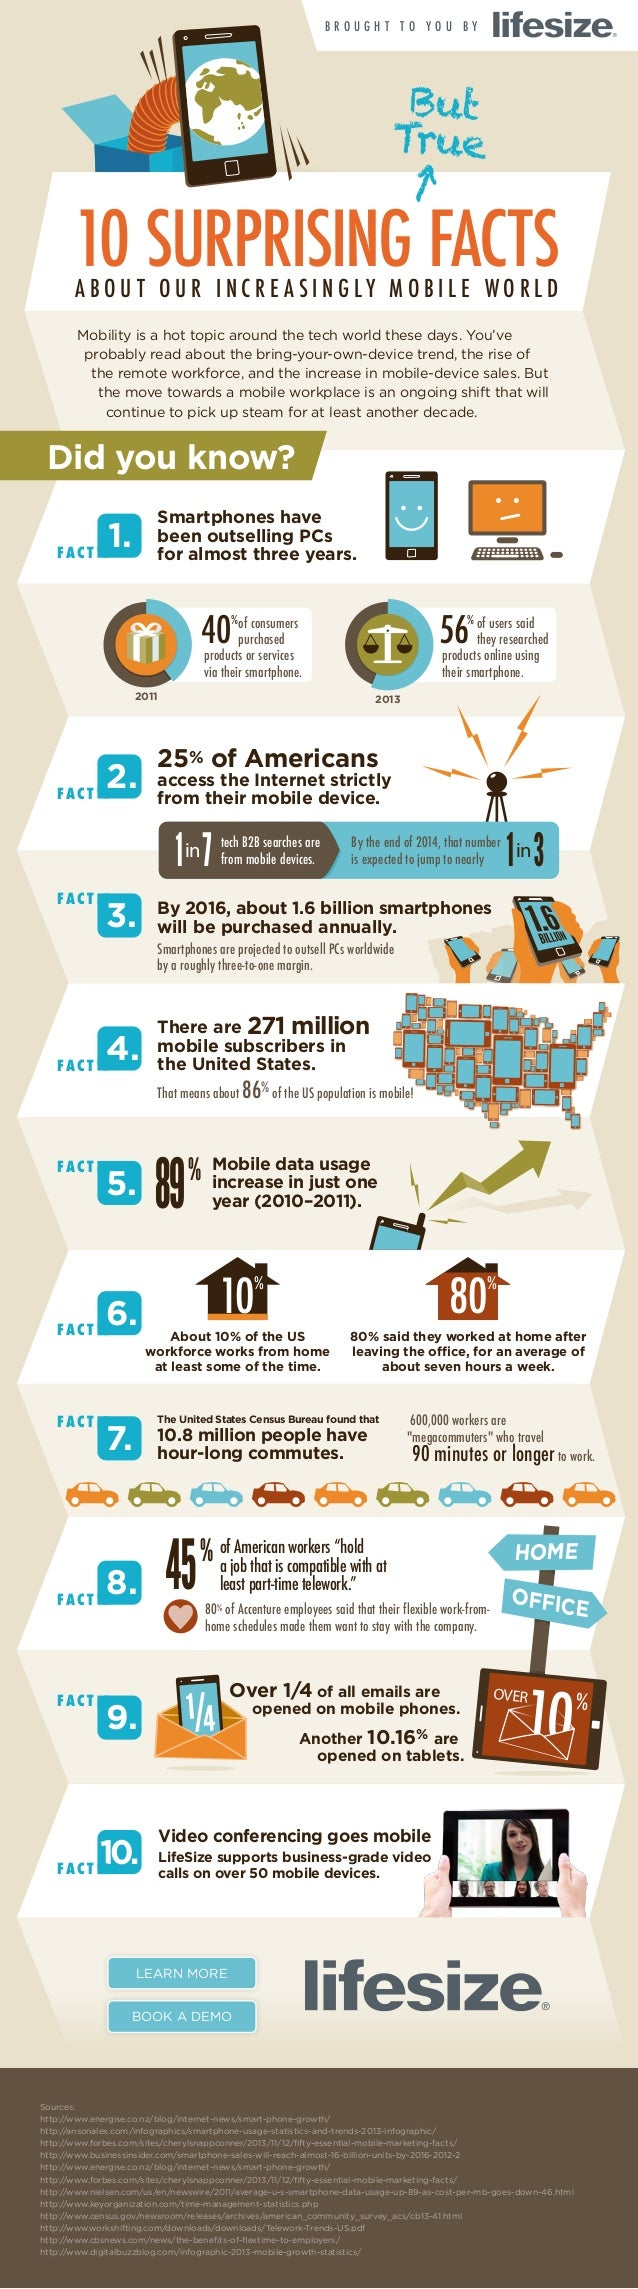 10 Surprising Facts About Our Increasingly Mobile World | Lifesize